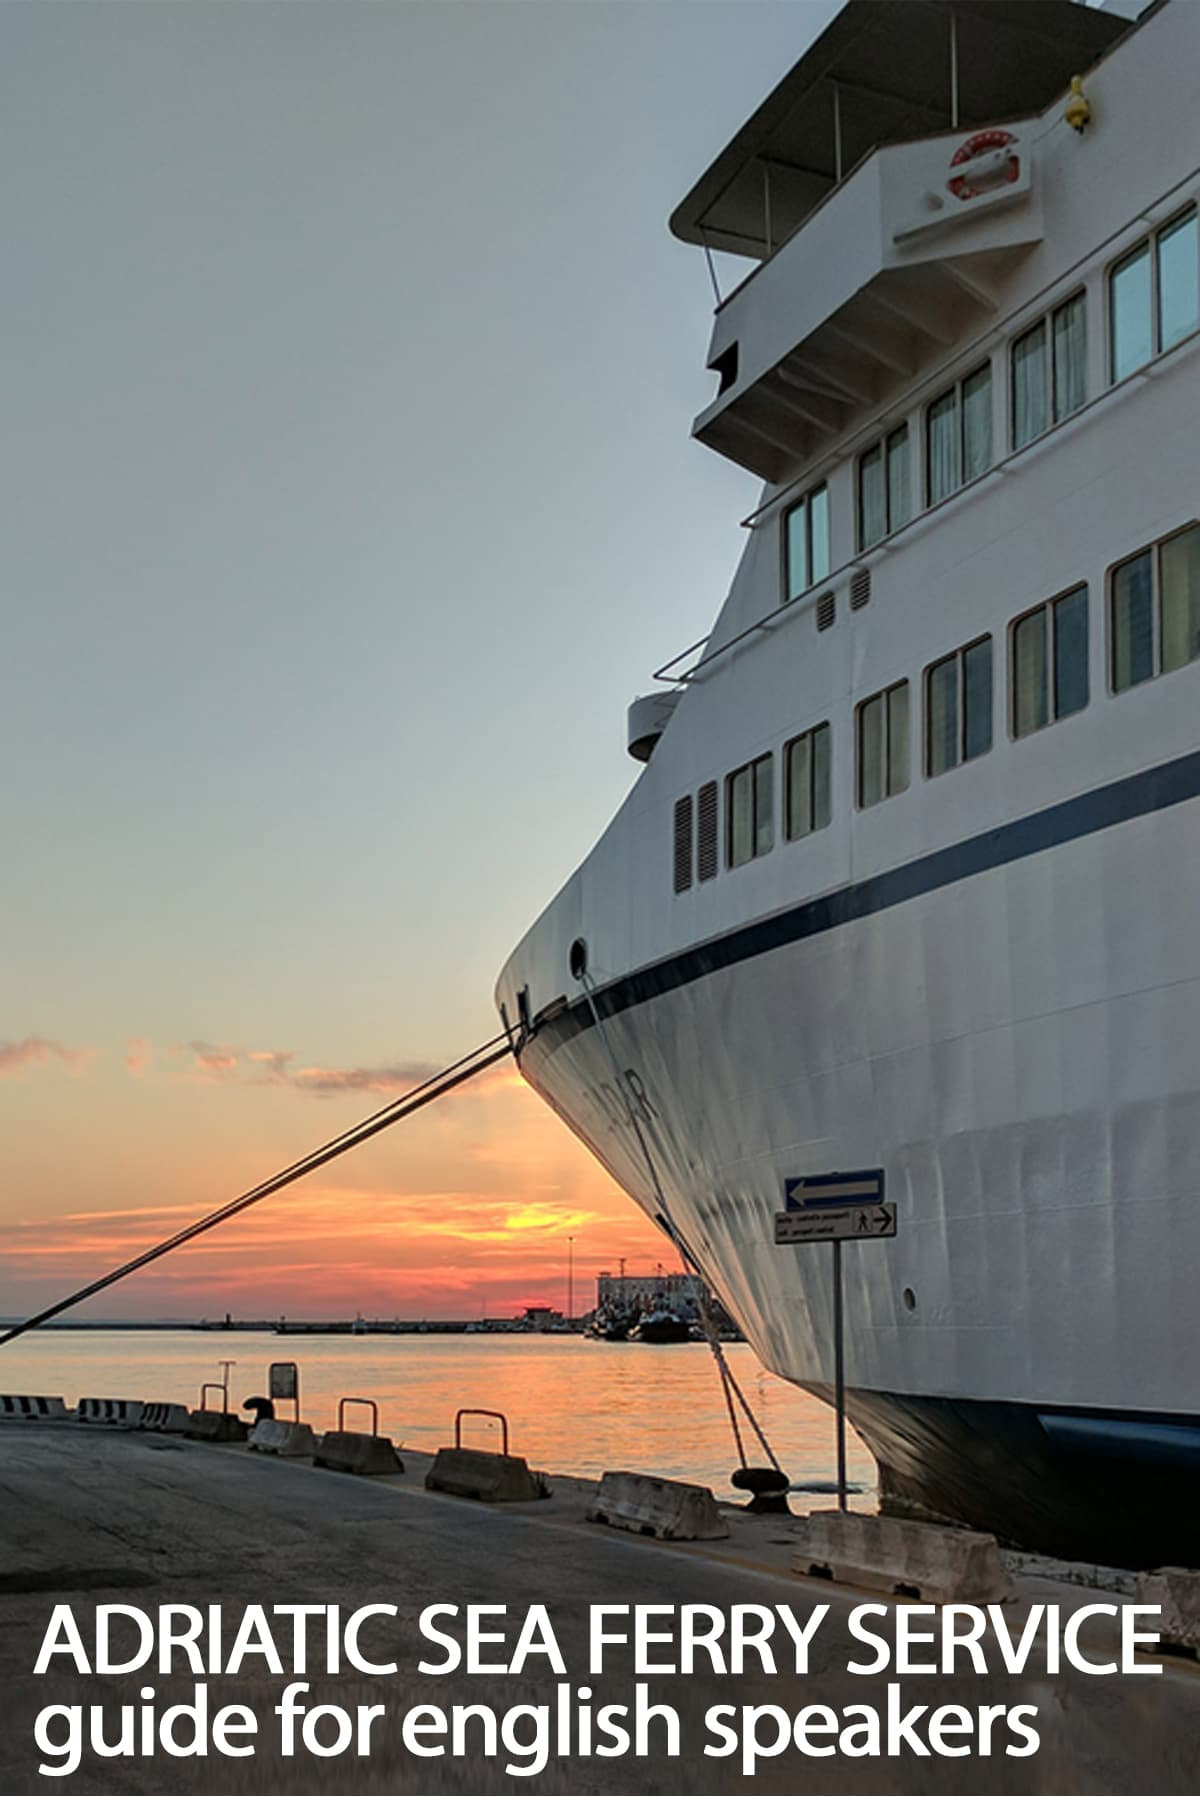 Navigating the state run adriatic sea ferries from italy to croatian coasts